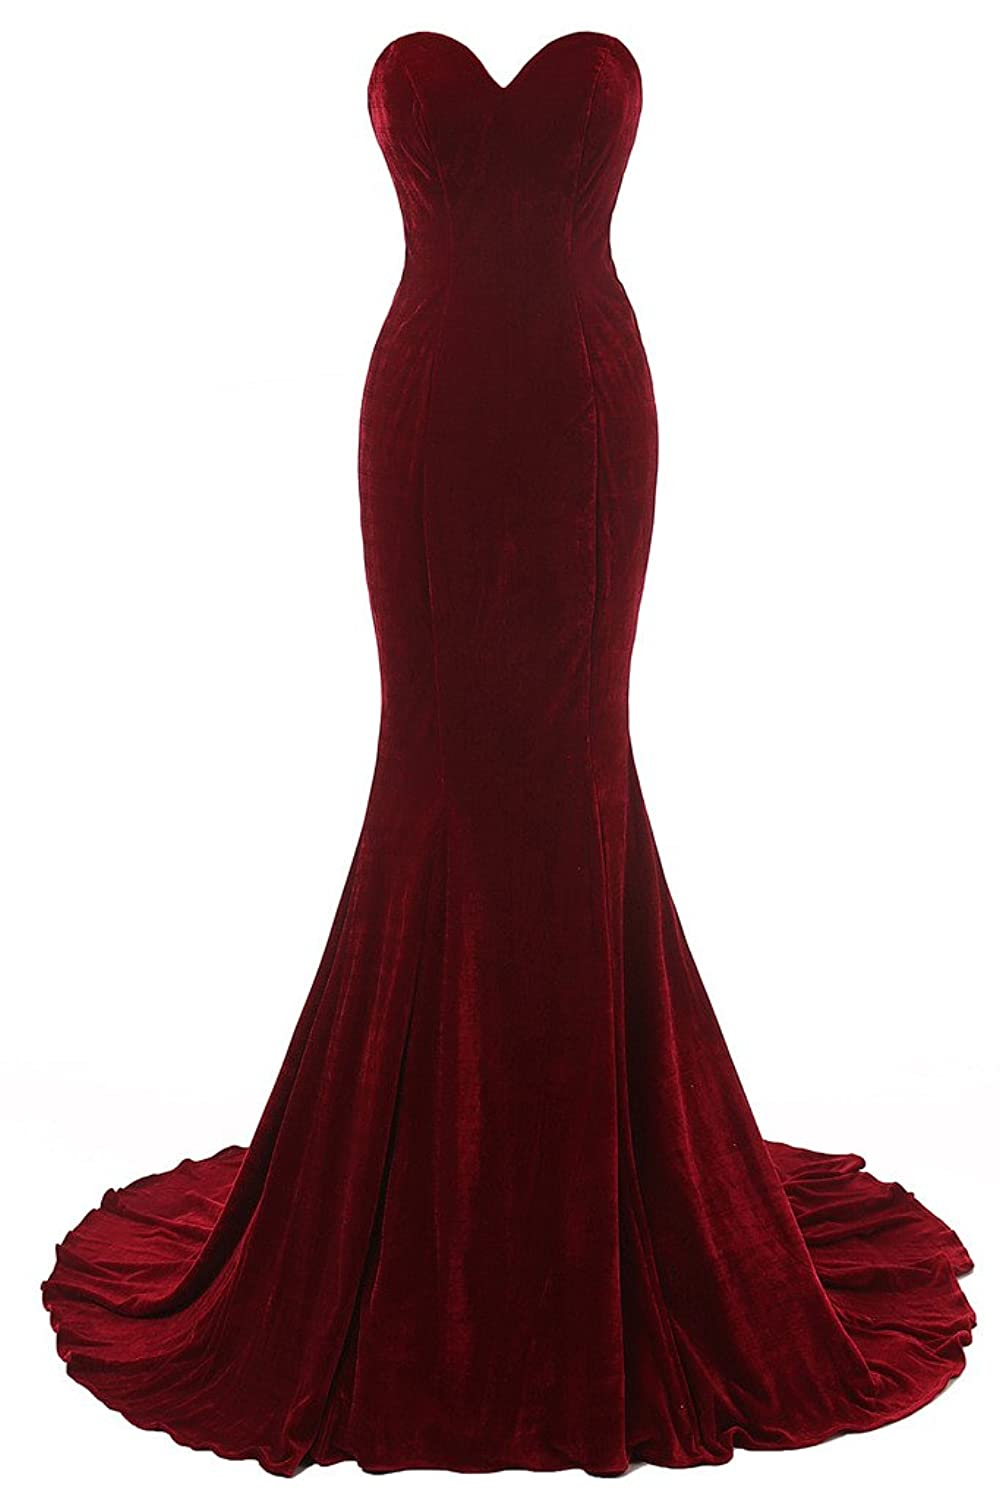 Baijinbai Women's Long Red Mermaid Bridesmaid Party Dresses Evening Gown red